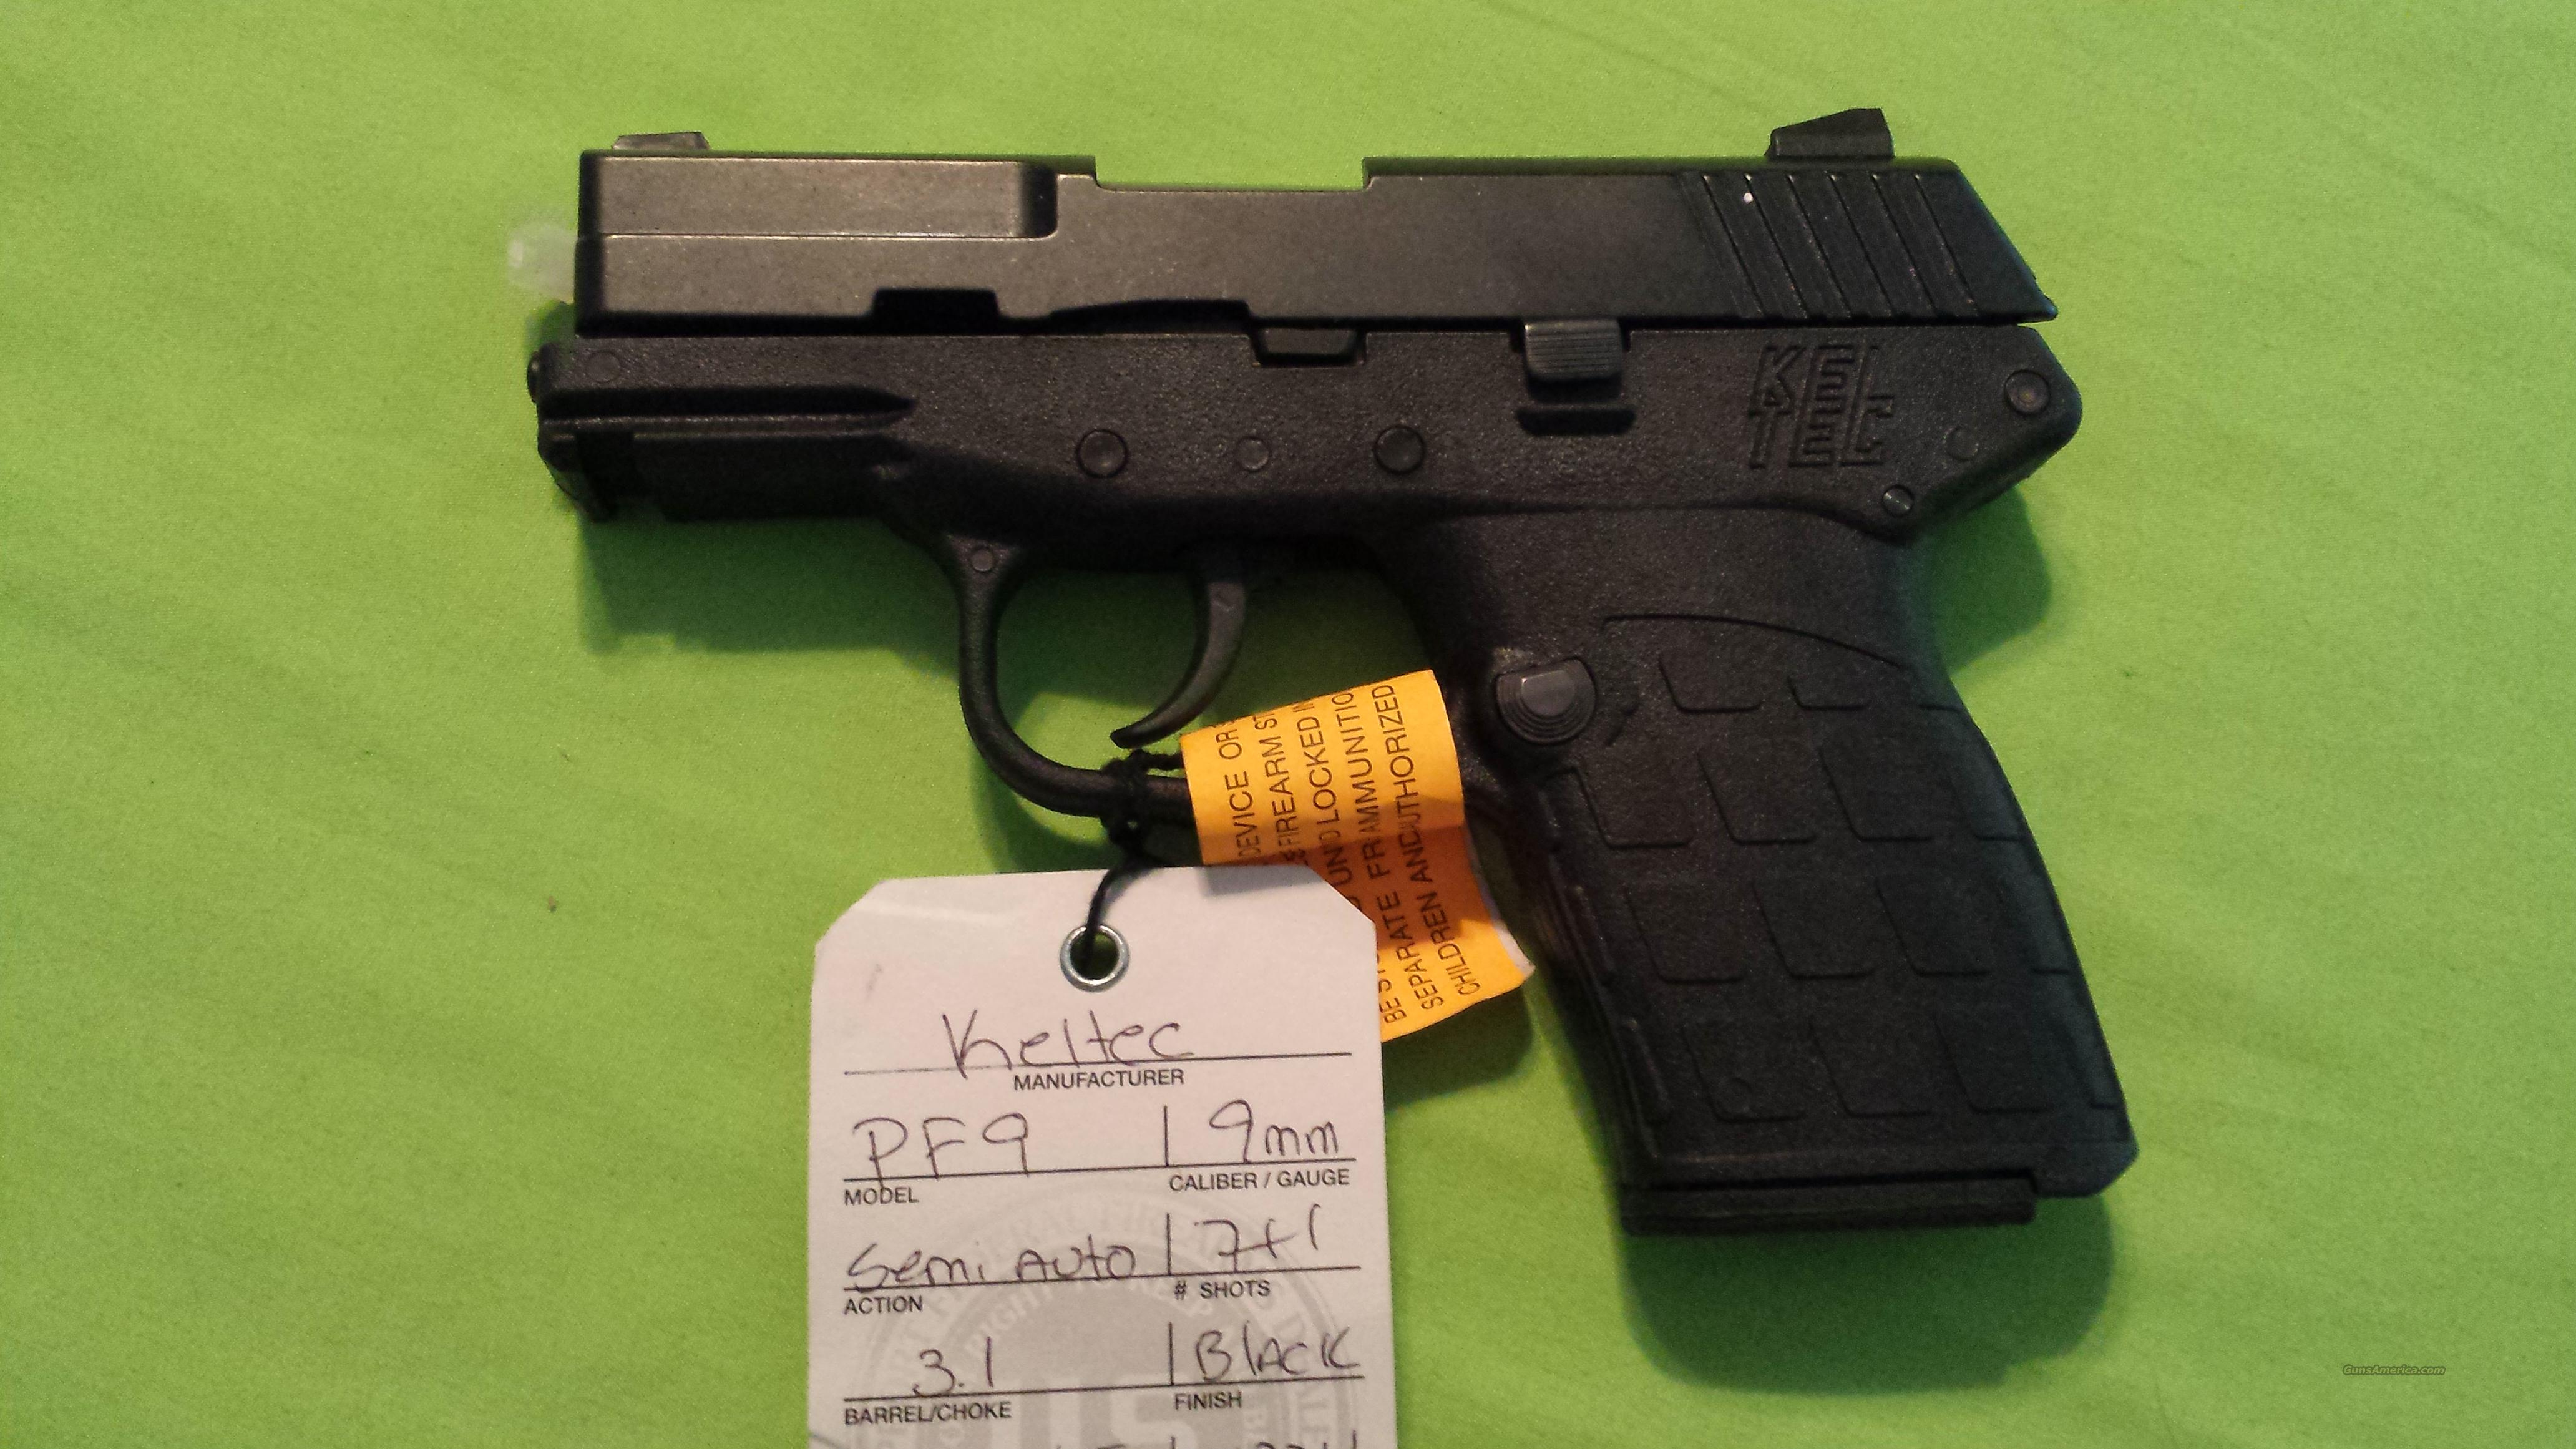 "KELTEC PF-9 PF 9 PF9 9MM 7RD BLACK 3.1"" BARREL  Guns > Pistols > Kel-Tec Pistols > Pocket Pistol Type"